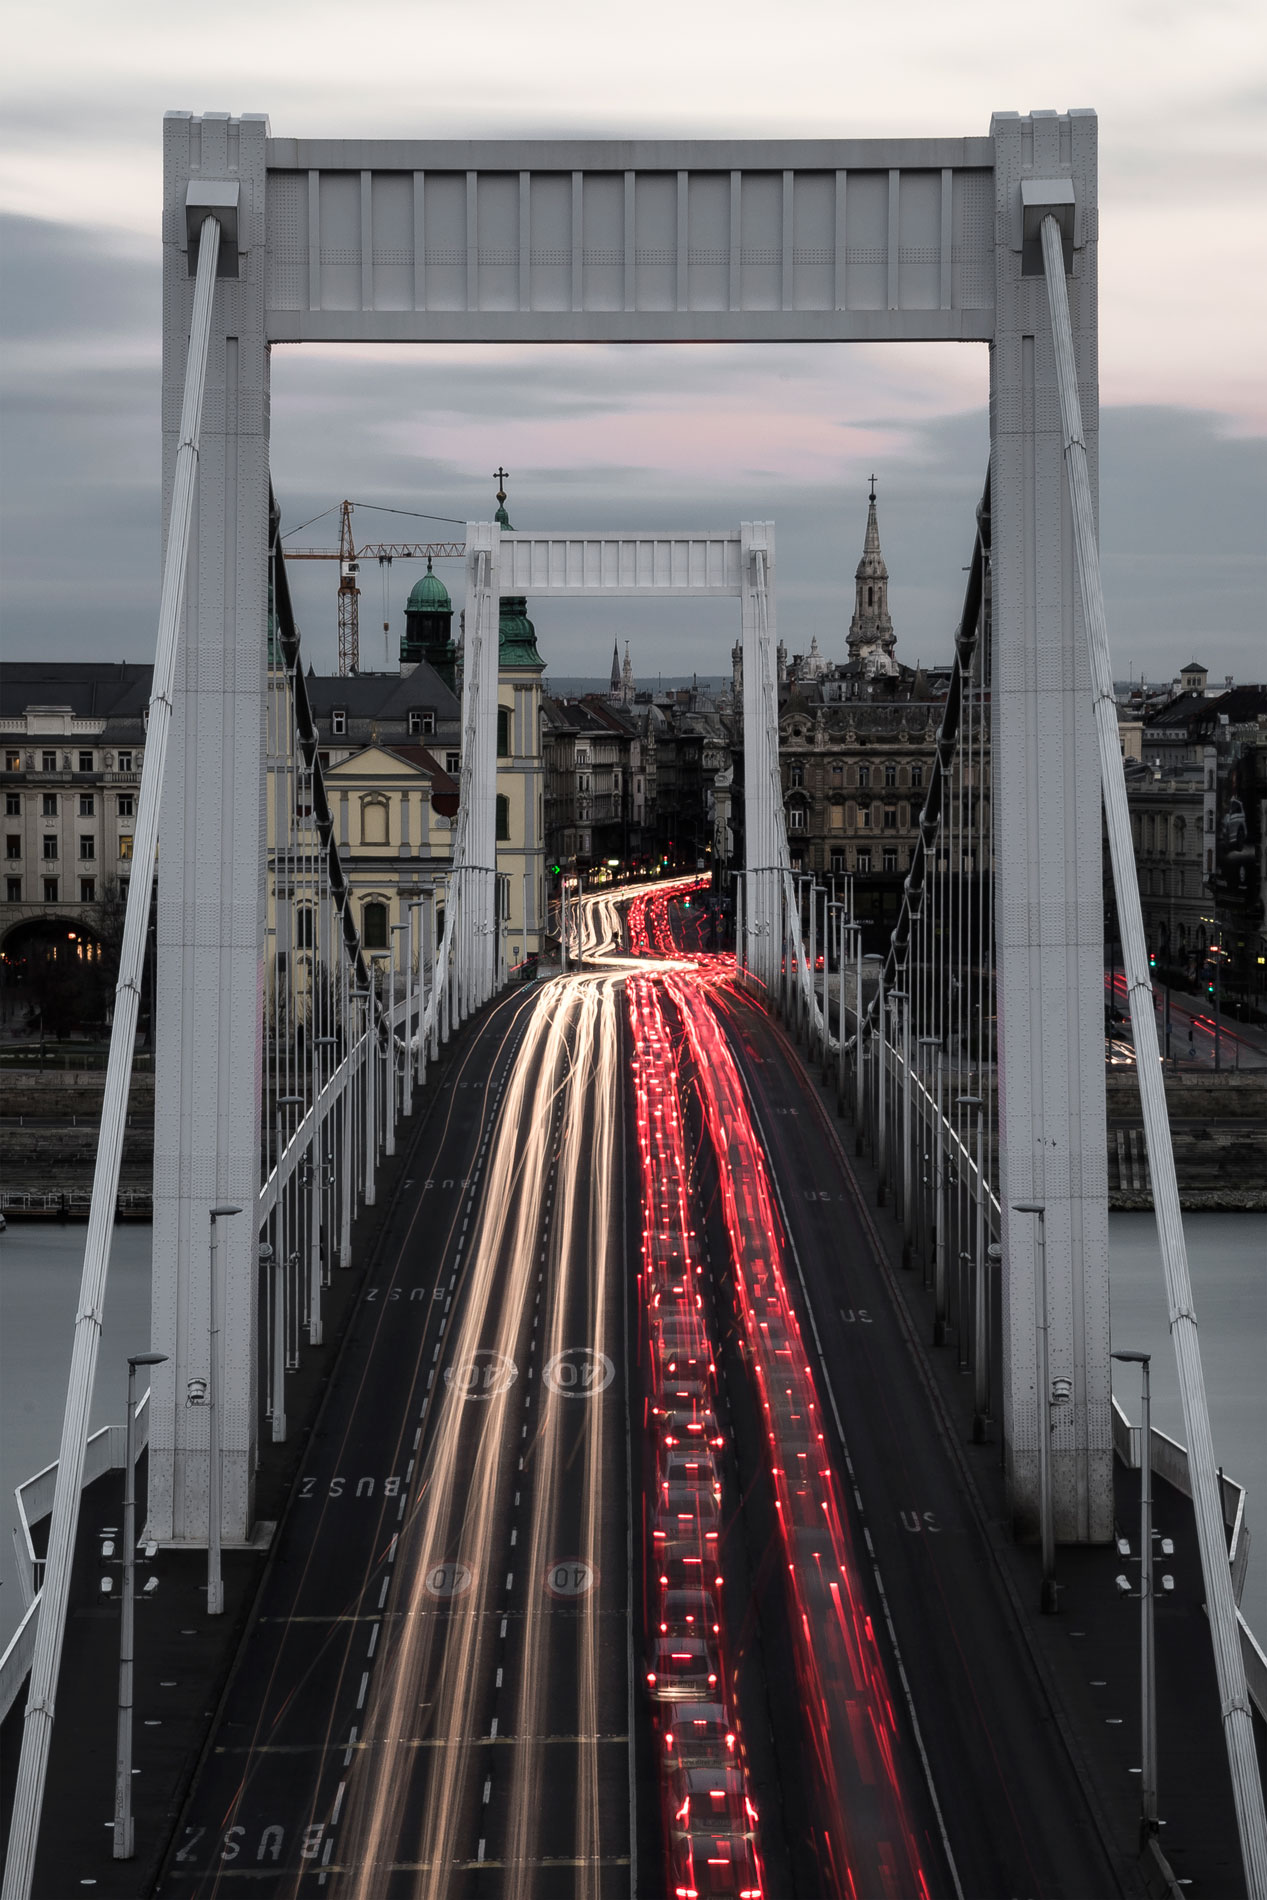 budapest_atthary_photography_bridge_34